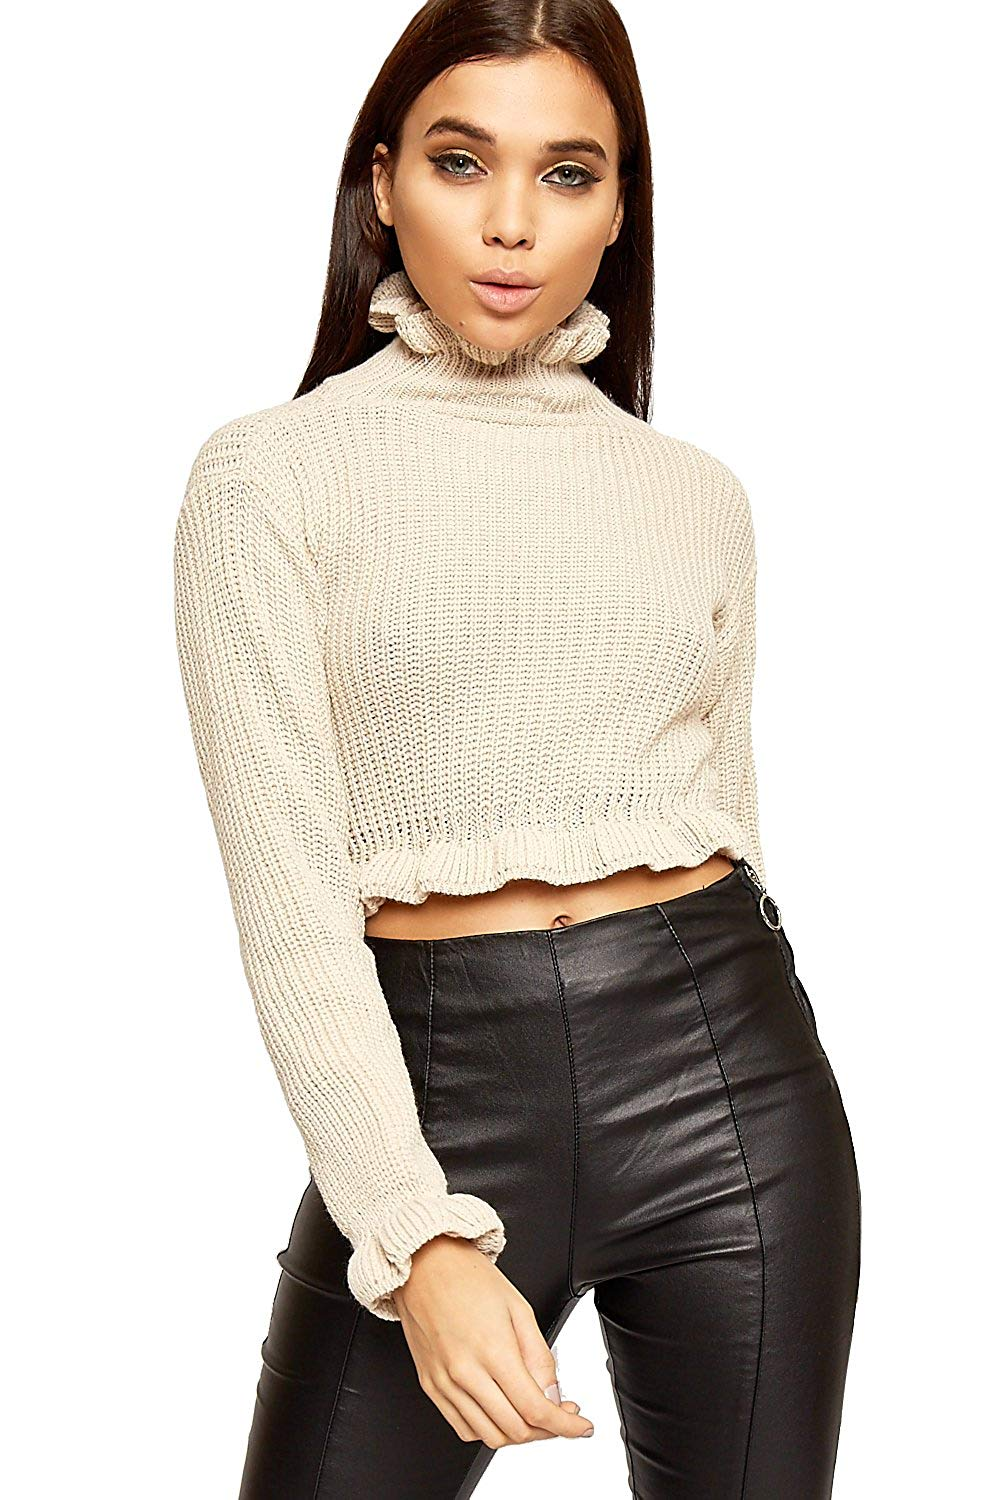 48f9ade999d83 Get Quotations · WEARALL Women s Cable Knitted Ruffle Trim Long Sleeve High  Neck Top Cropped Jumper